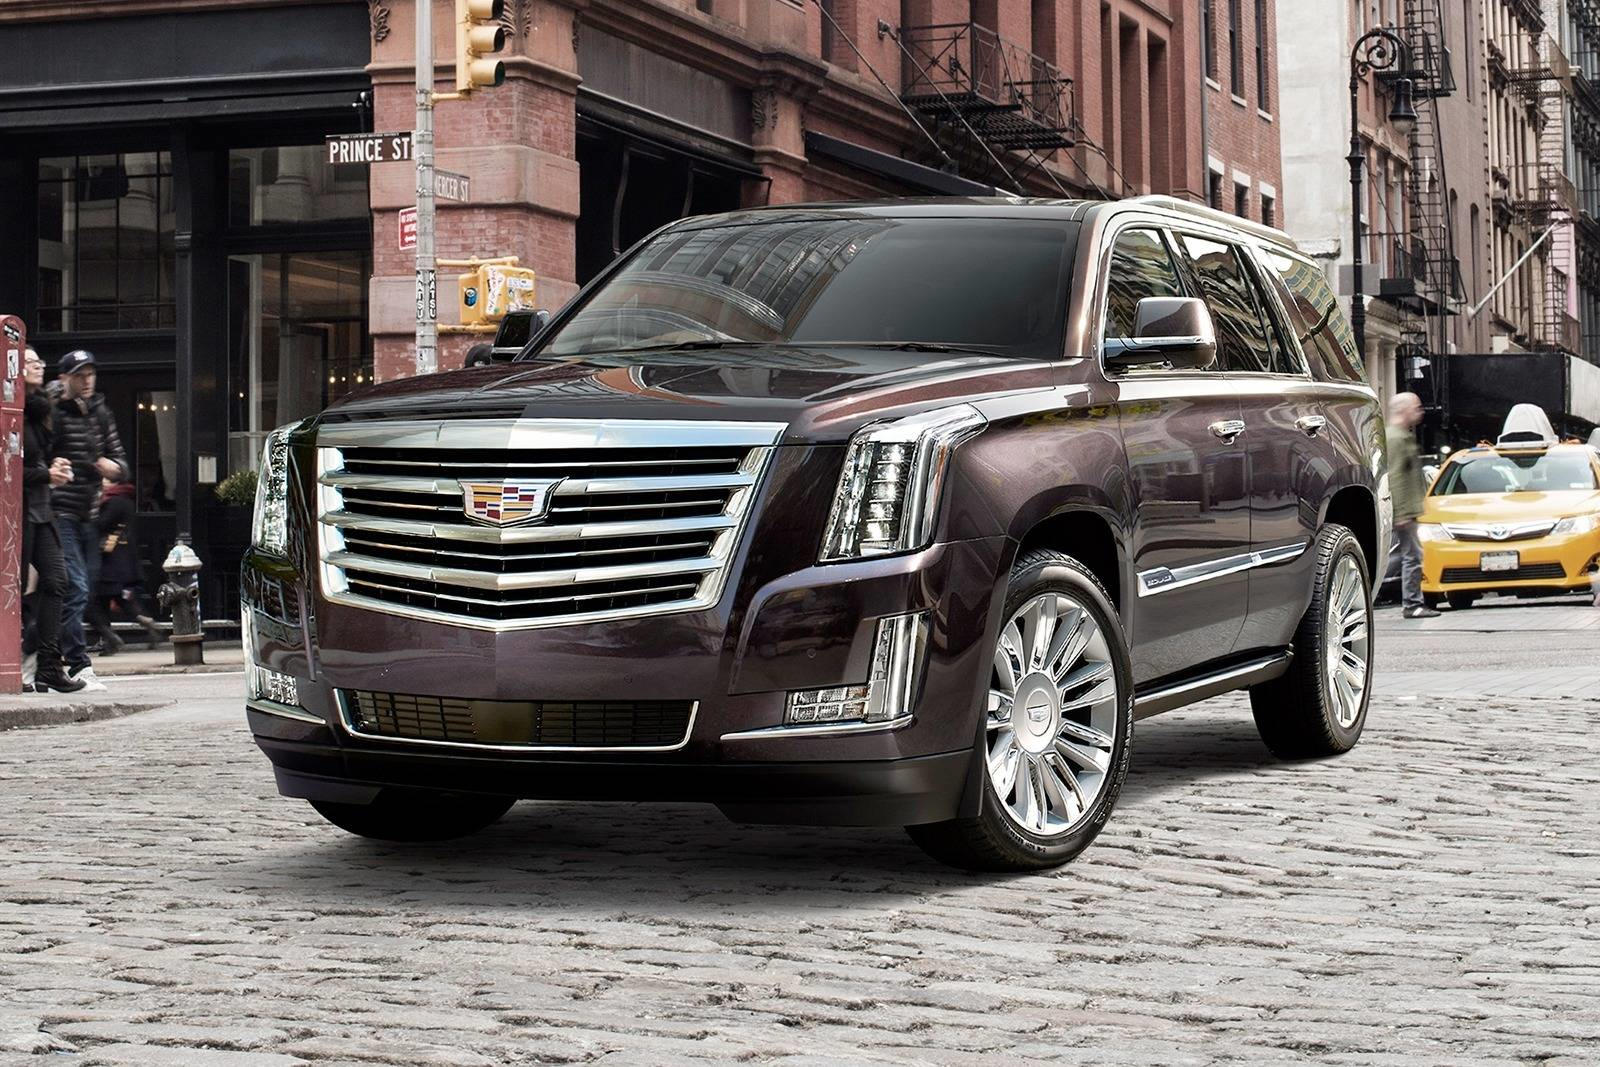 2018 Cadillac Escalade Review, Trims, Specs and Price - CarBuzz